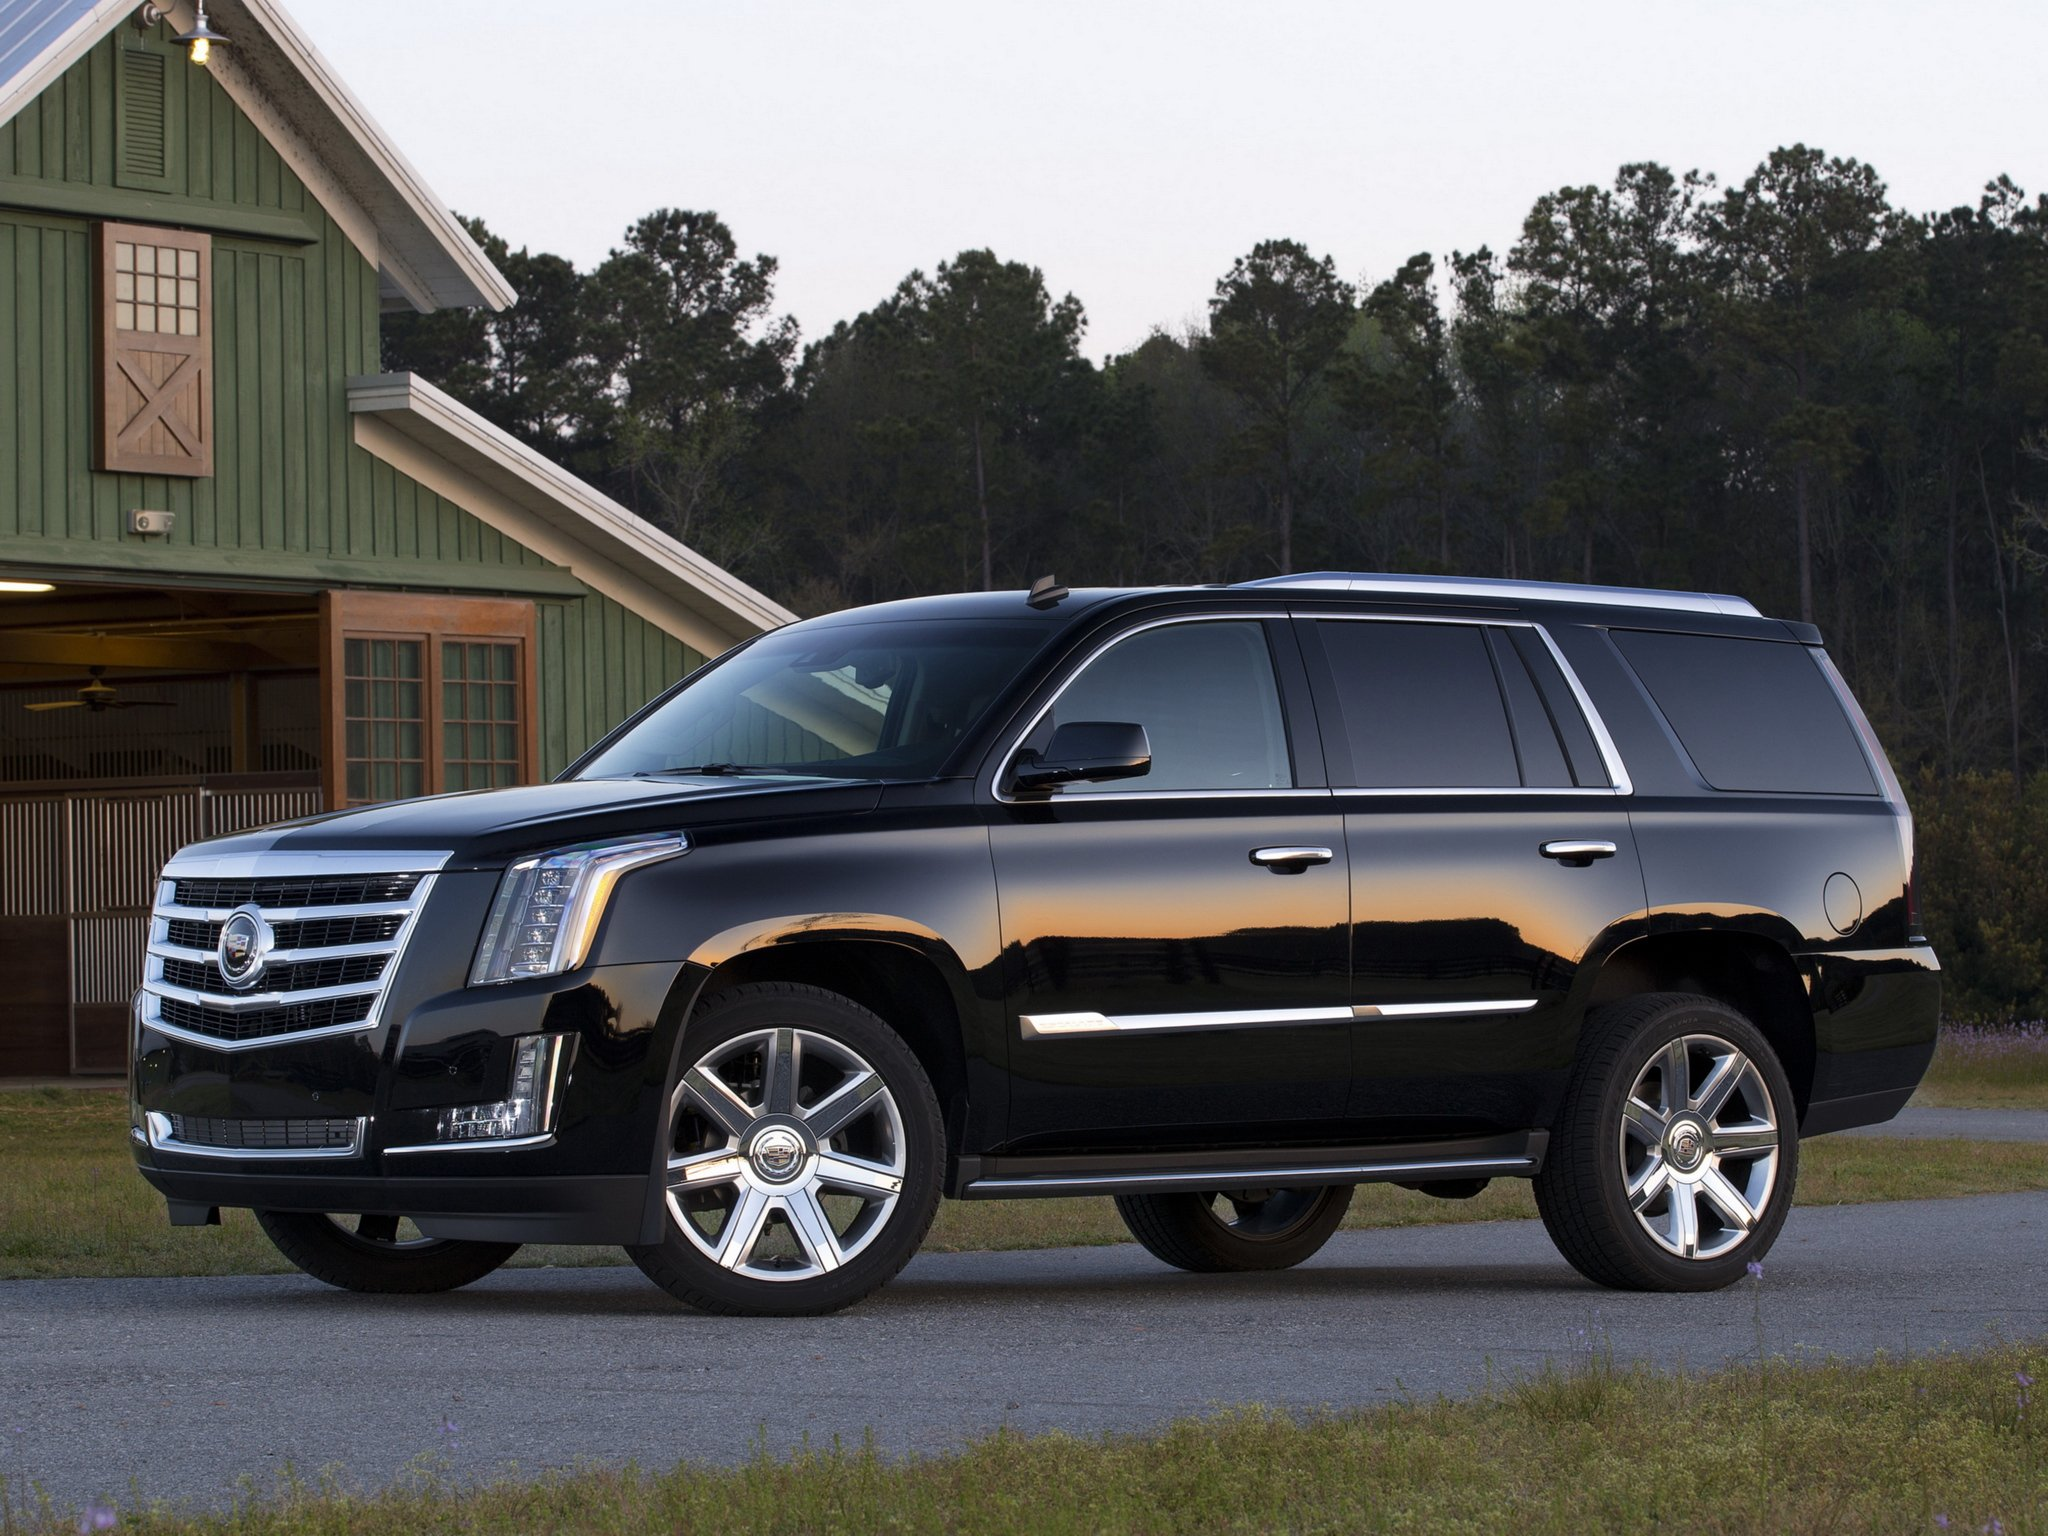 2015 Cadillac Escalade Suv Luxury H Wallpaper  2048x1536